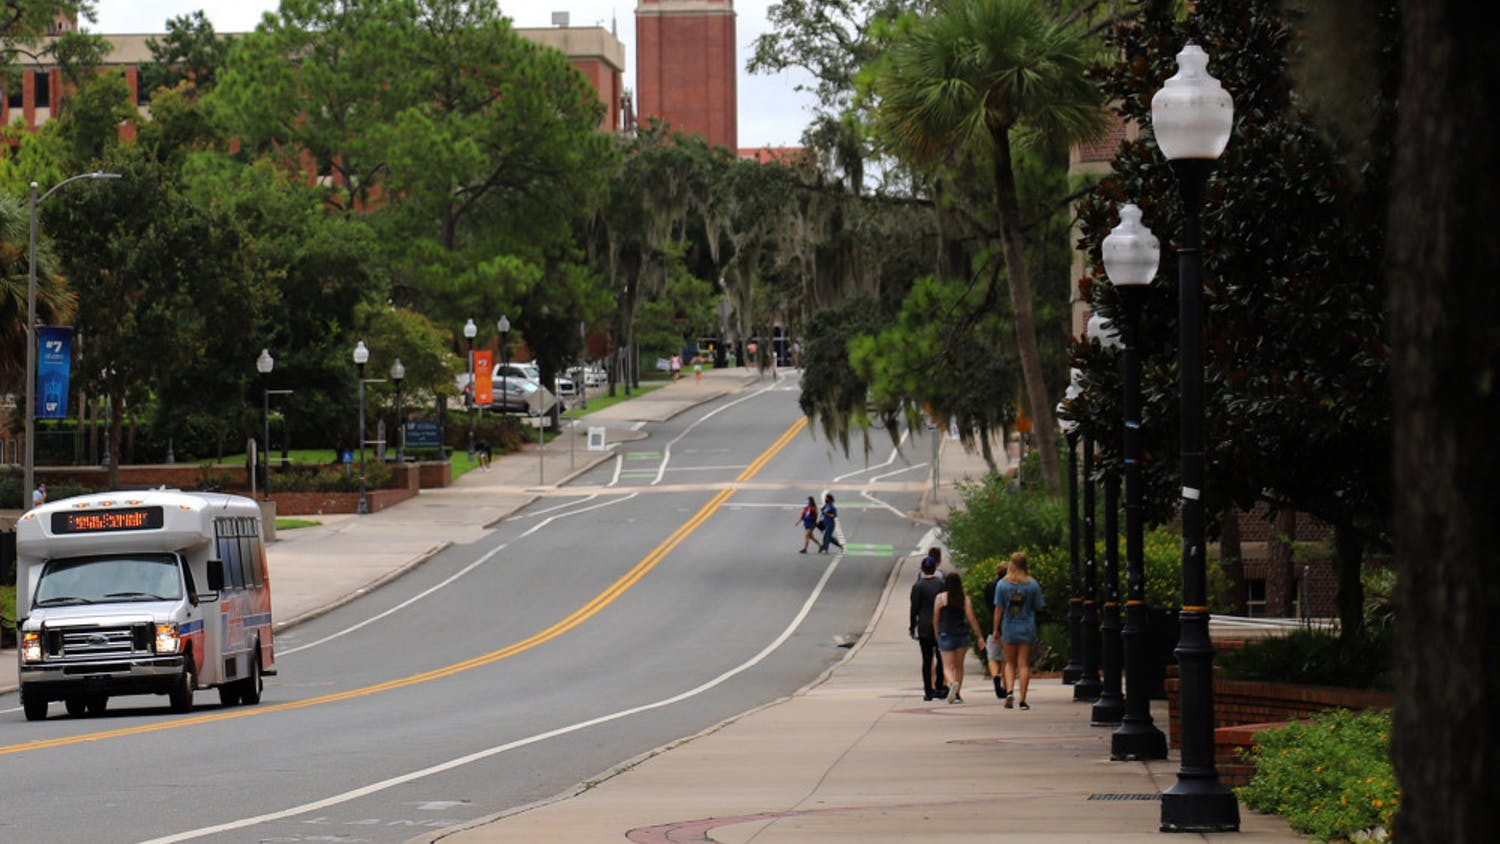 Few students are seen wandering around UF's campus on August 31, 2020, in Gainesville Fla., due to the social distancing guidelines and mask requirements set in place. However, the Campus Connector and RTS buses still operate with frequent trips across campus.